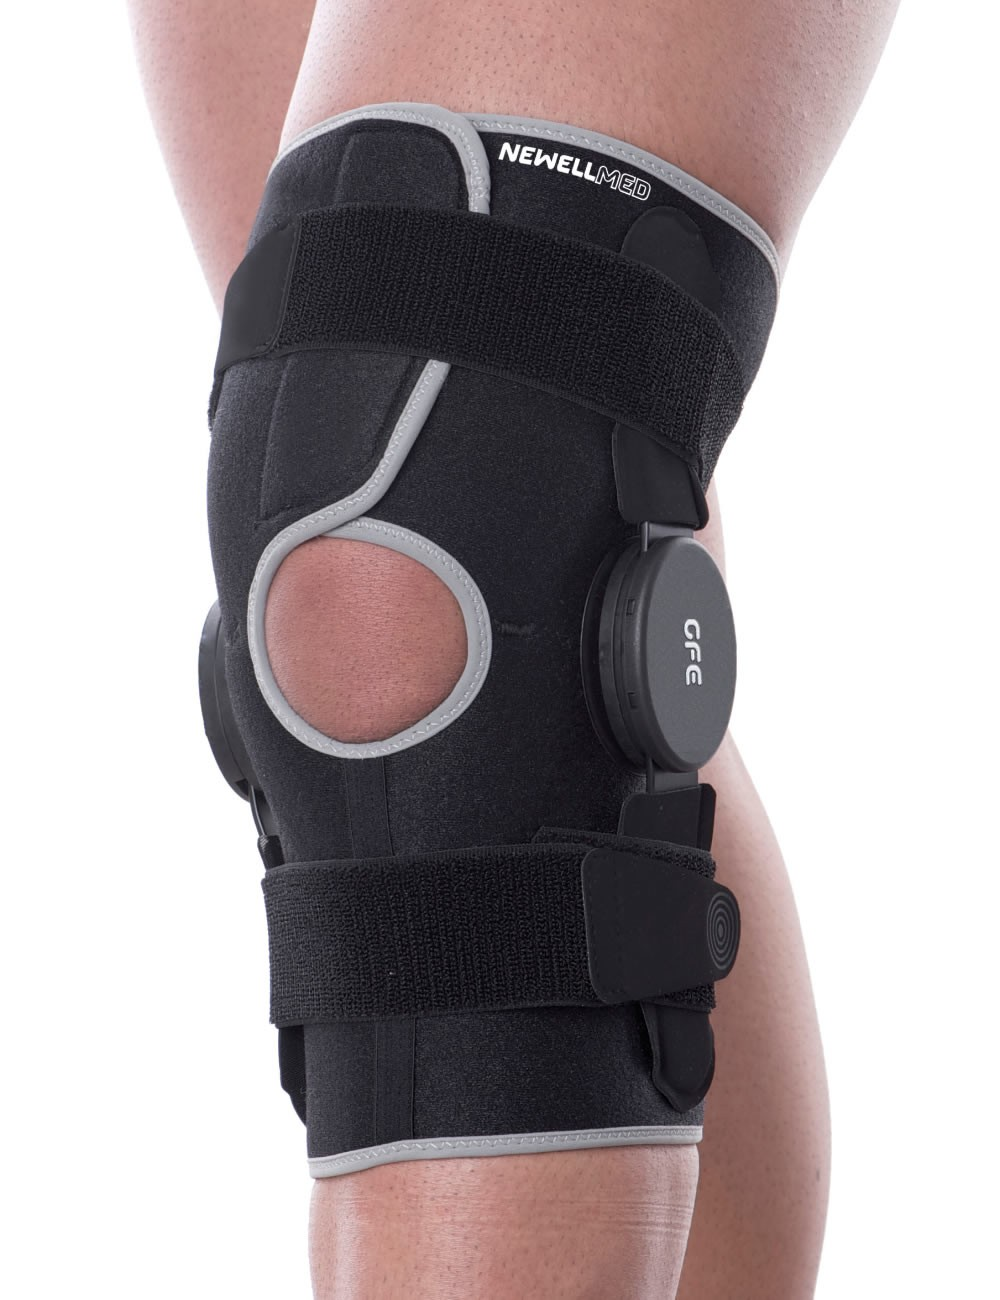 PK43 - Knee brace opened at the thigh